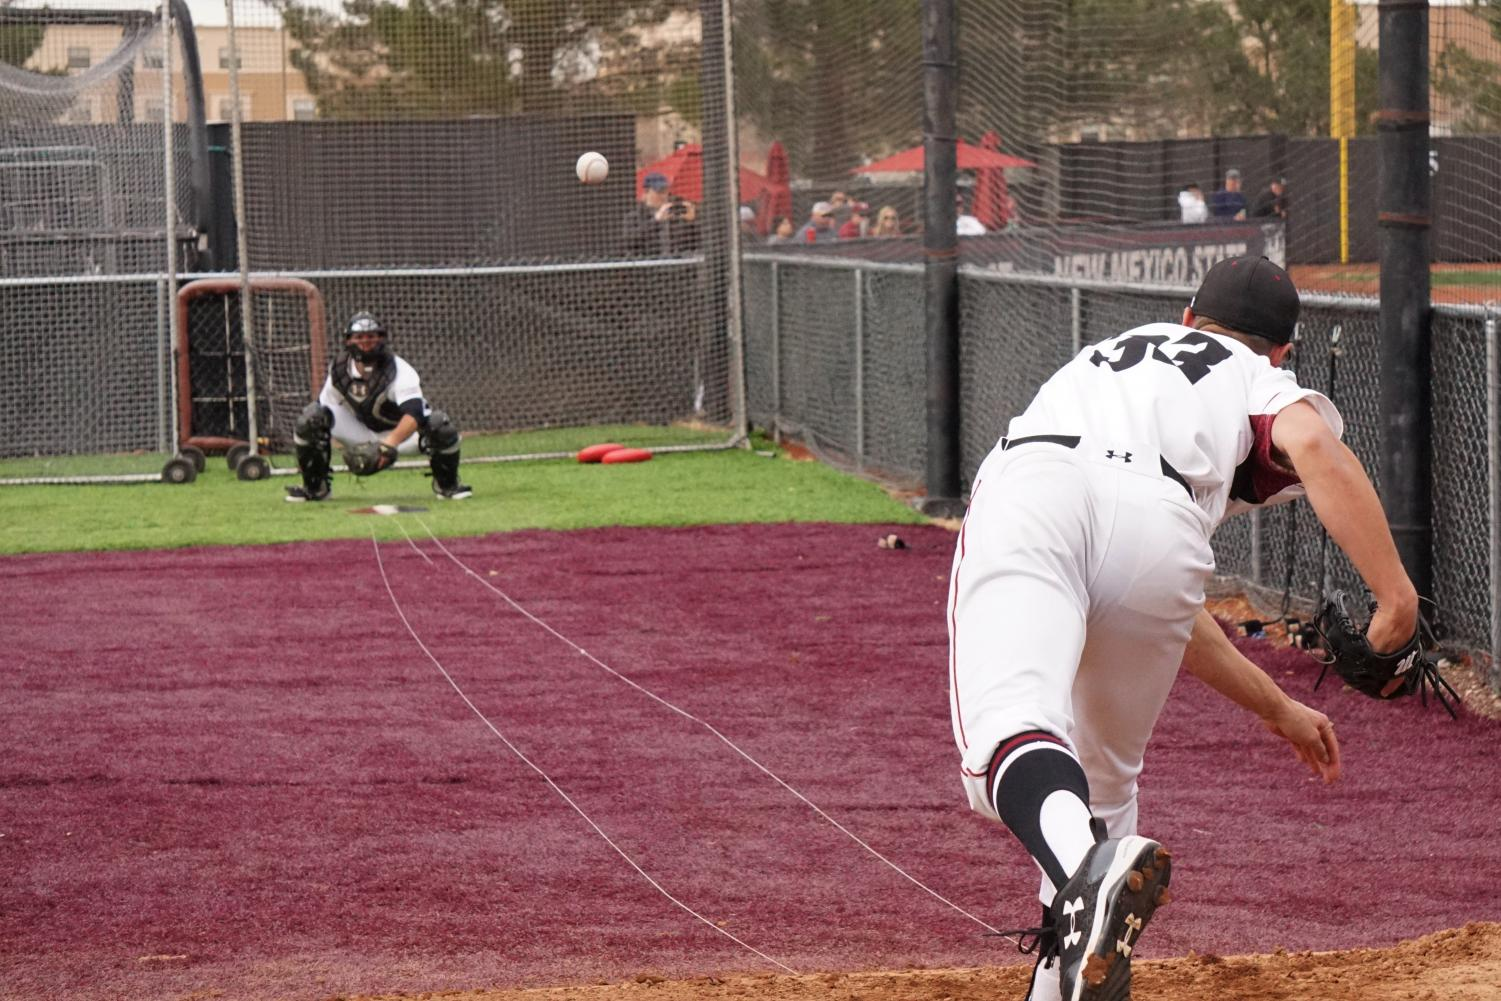 The Aggie bullpen had a good outing today as NMSU completed the 8-2 victory.